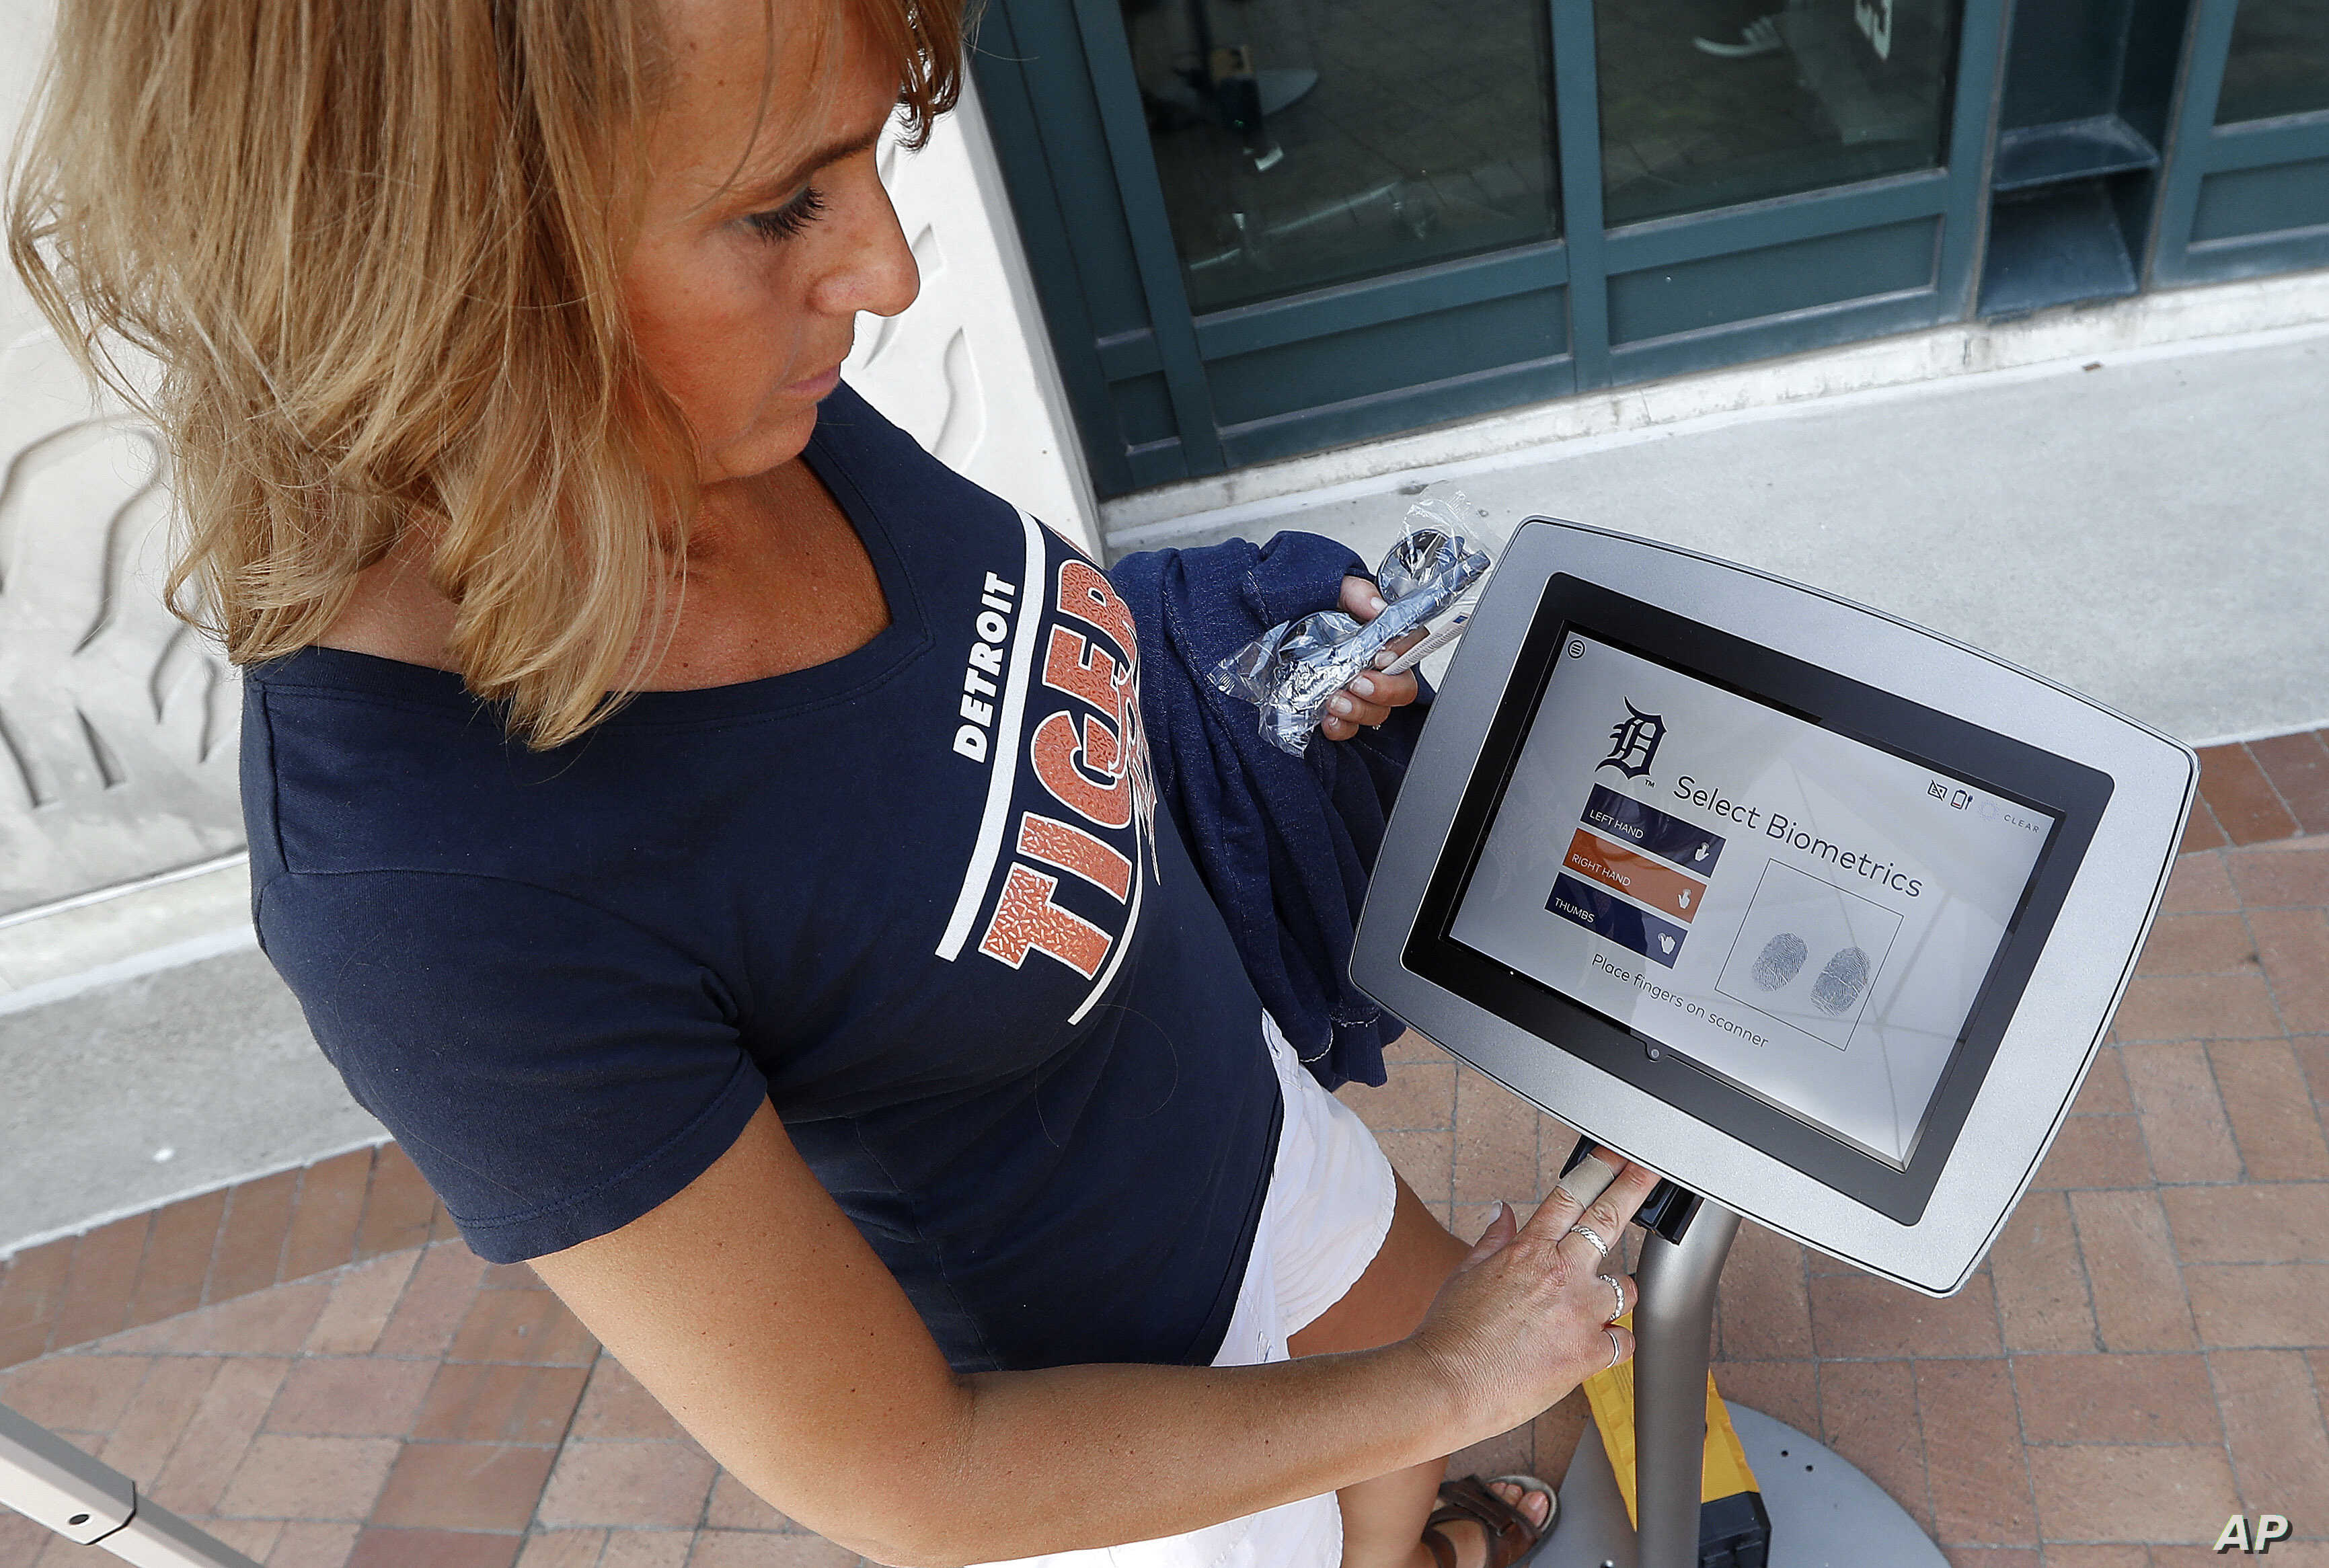 Jacquelyn Klimsza, of Fruitport, Mich., scans her fingerprints at a CLEAR biometric system outside Comerica Park before a baseball game between the Detroit Tigers and Kansas City Royals in Detroit,  July 25, 2017. The Detroit stadium is among the fir